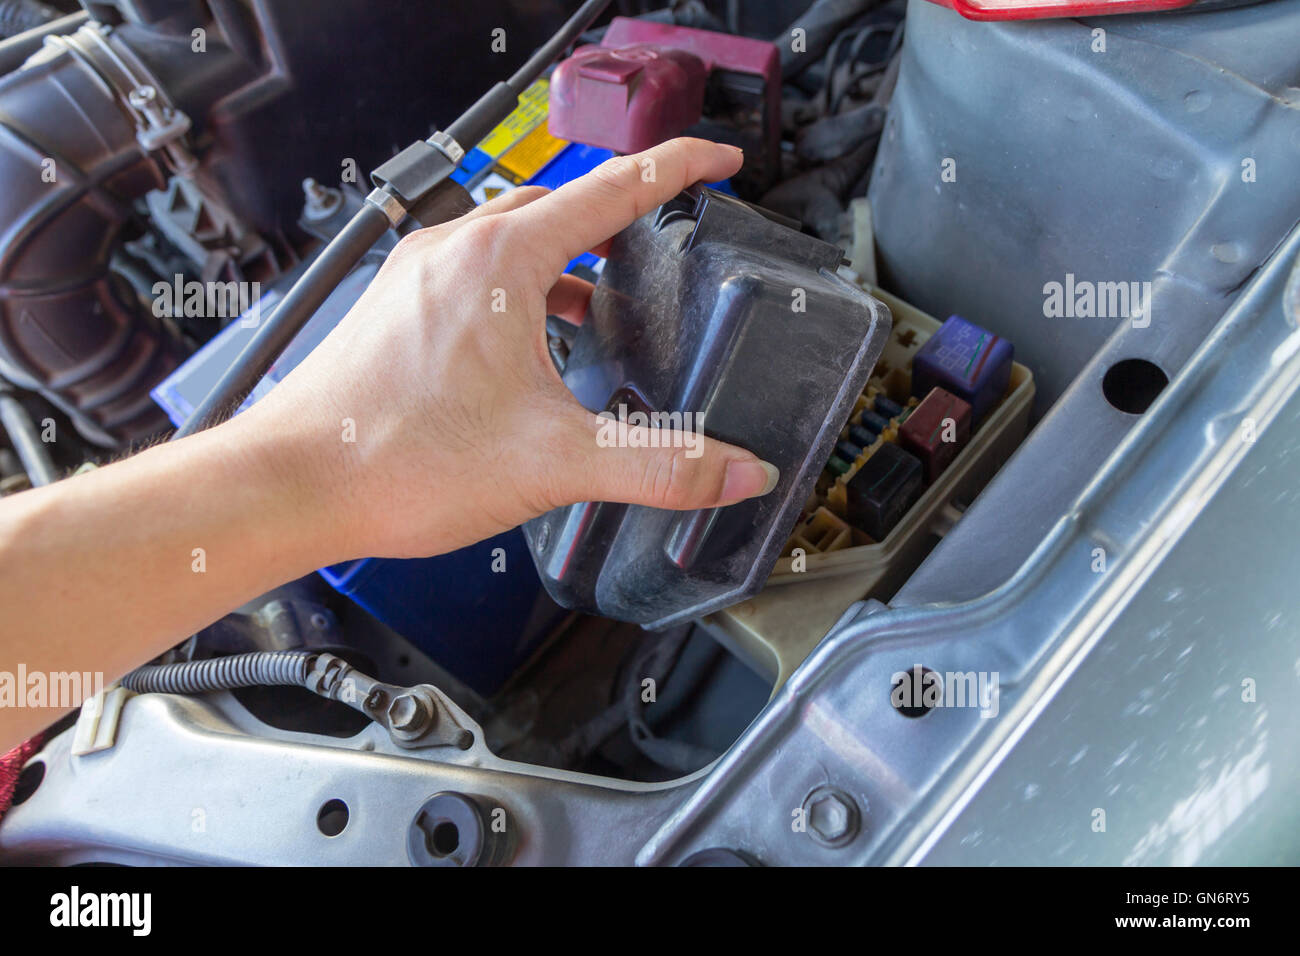 the man opening fuse box of old car GN6RY5 the man opening fuse box of old car stock photo, royalty free how to open a fuse box on a 2017 ford f150 at crackthecode.co